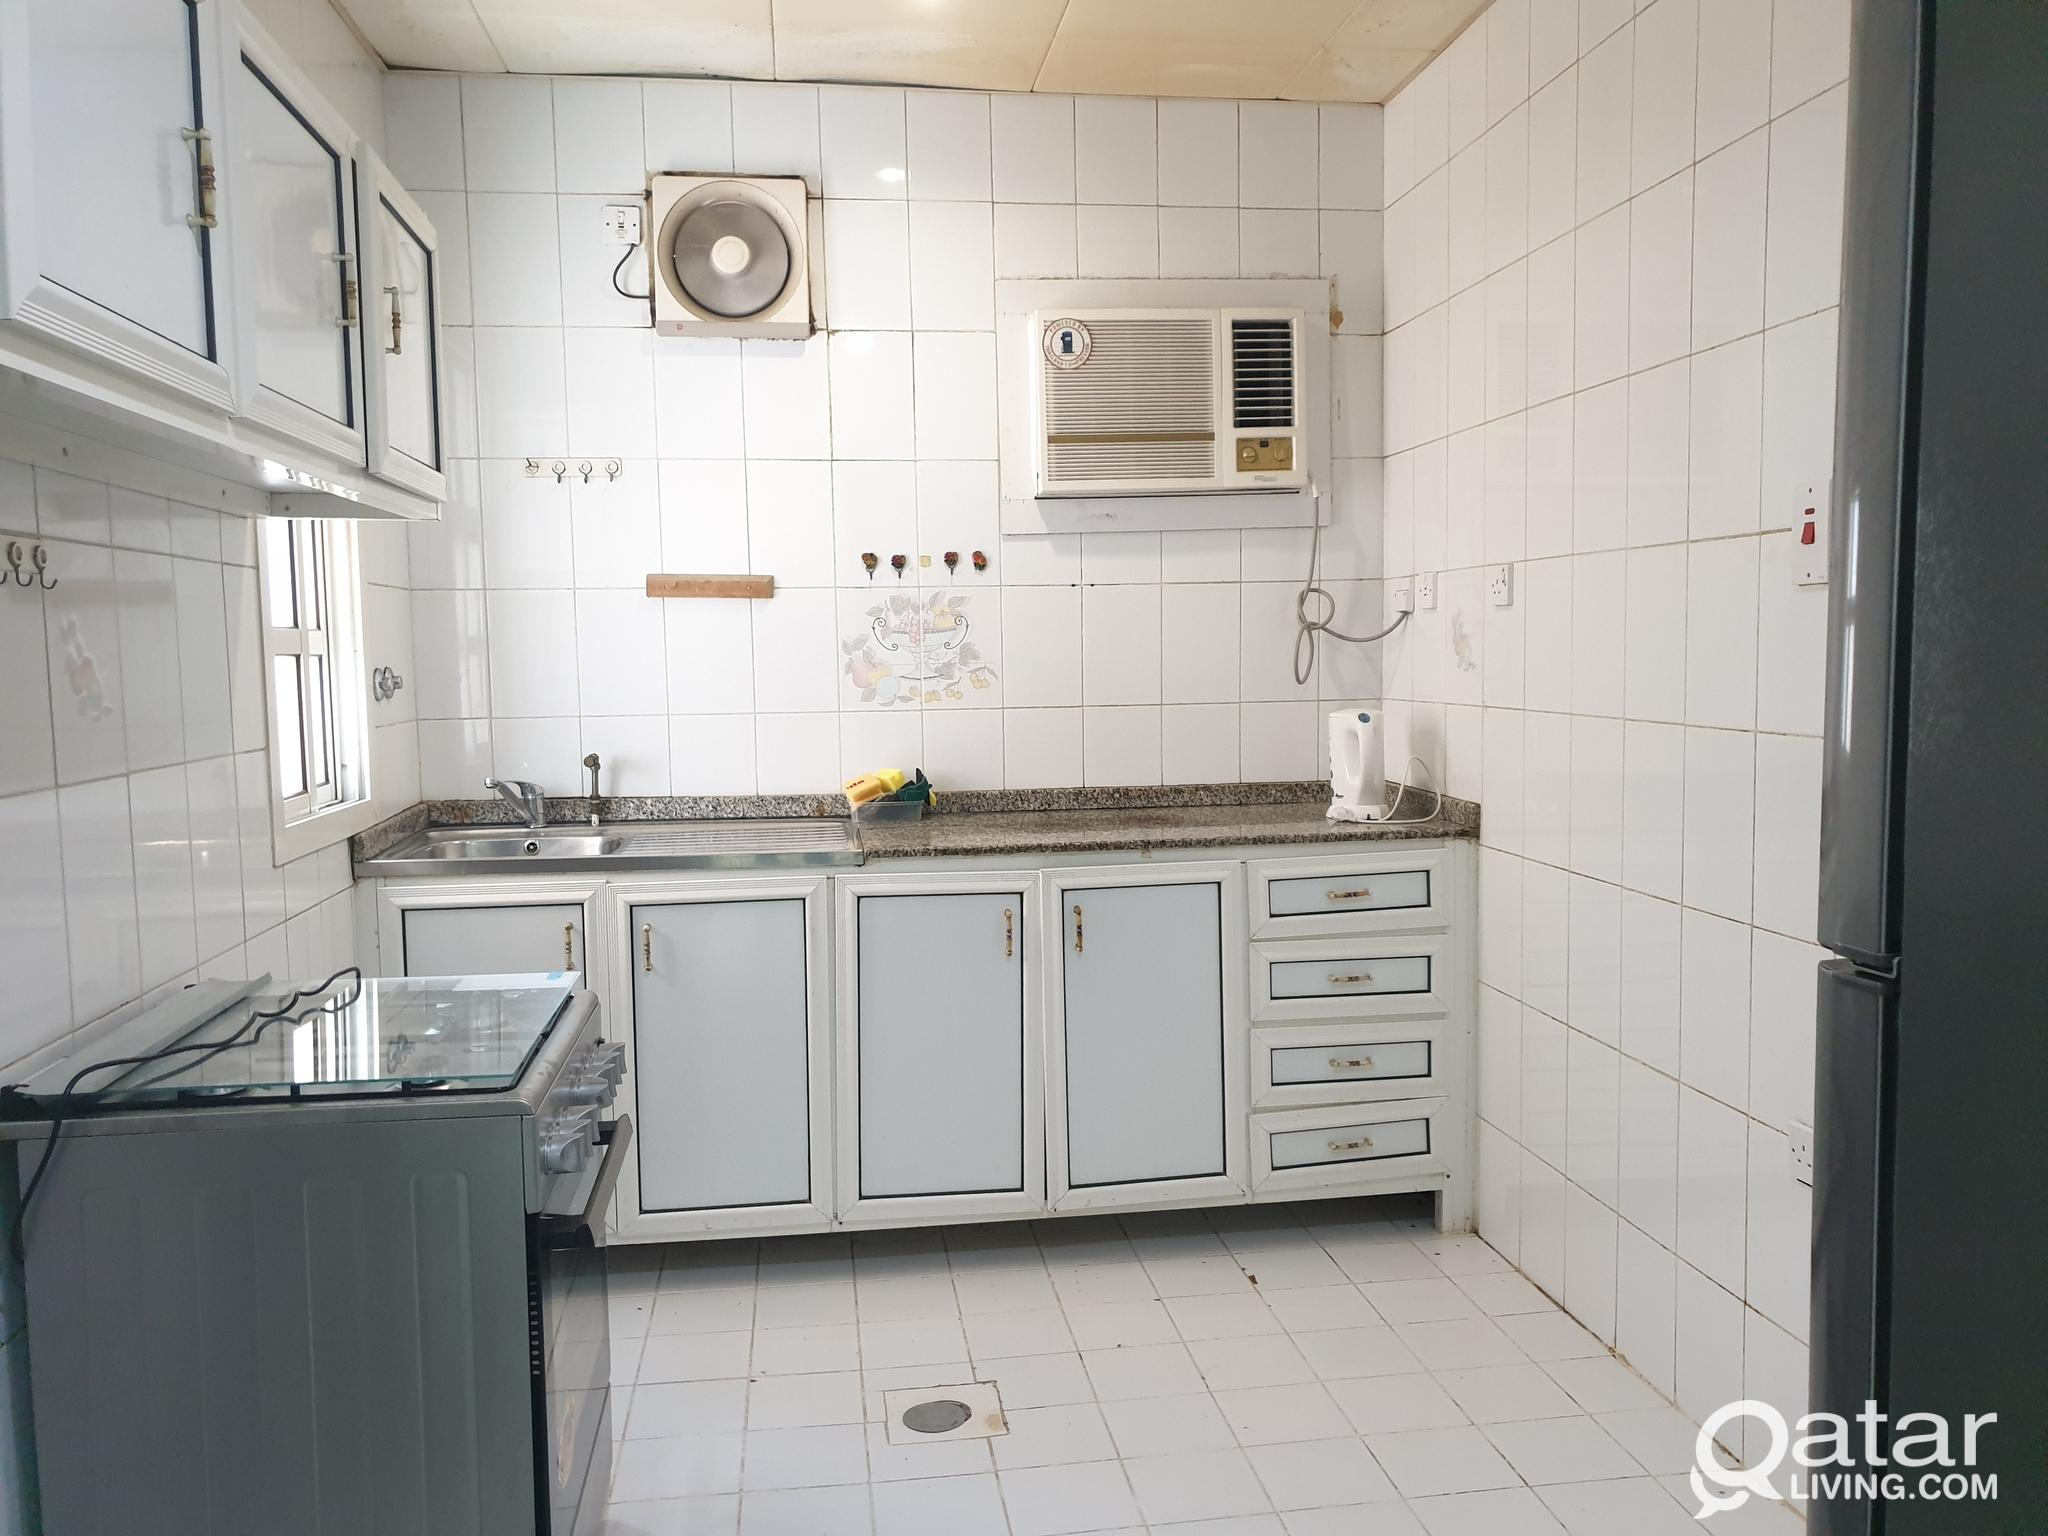 !! SPACIOUS 2BHK UNFURNISHED AVAILABLE IN BIN MAHM